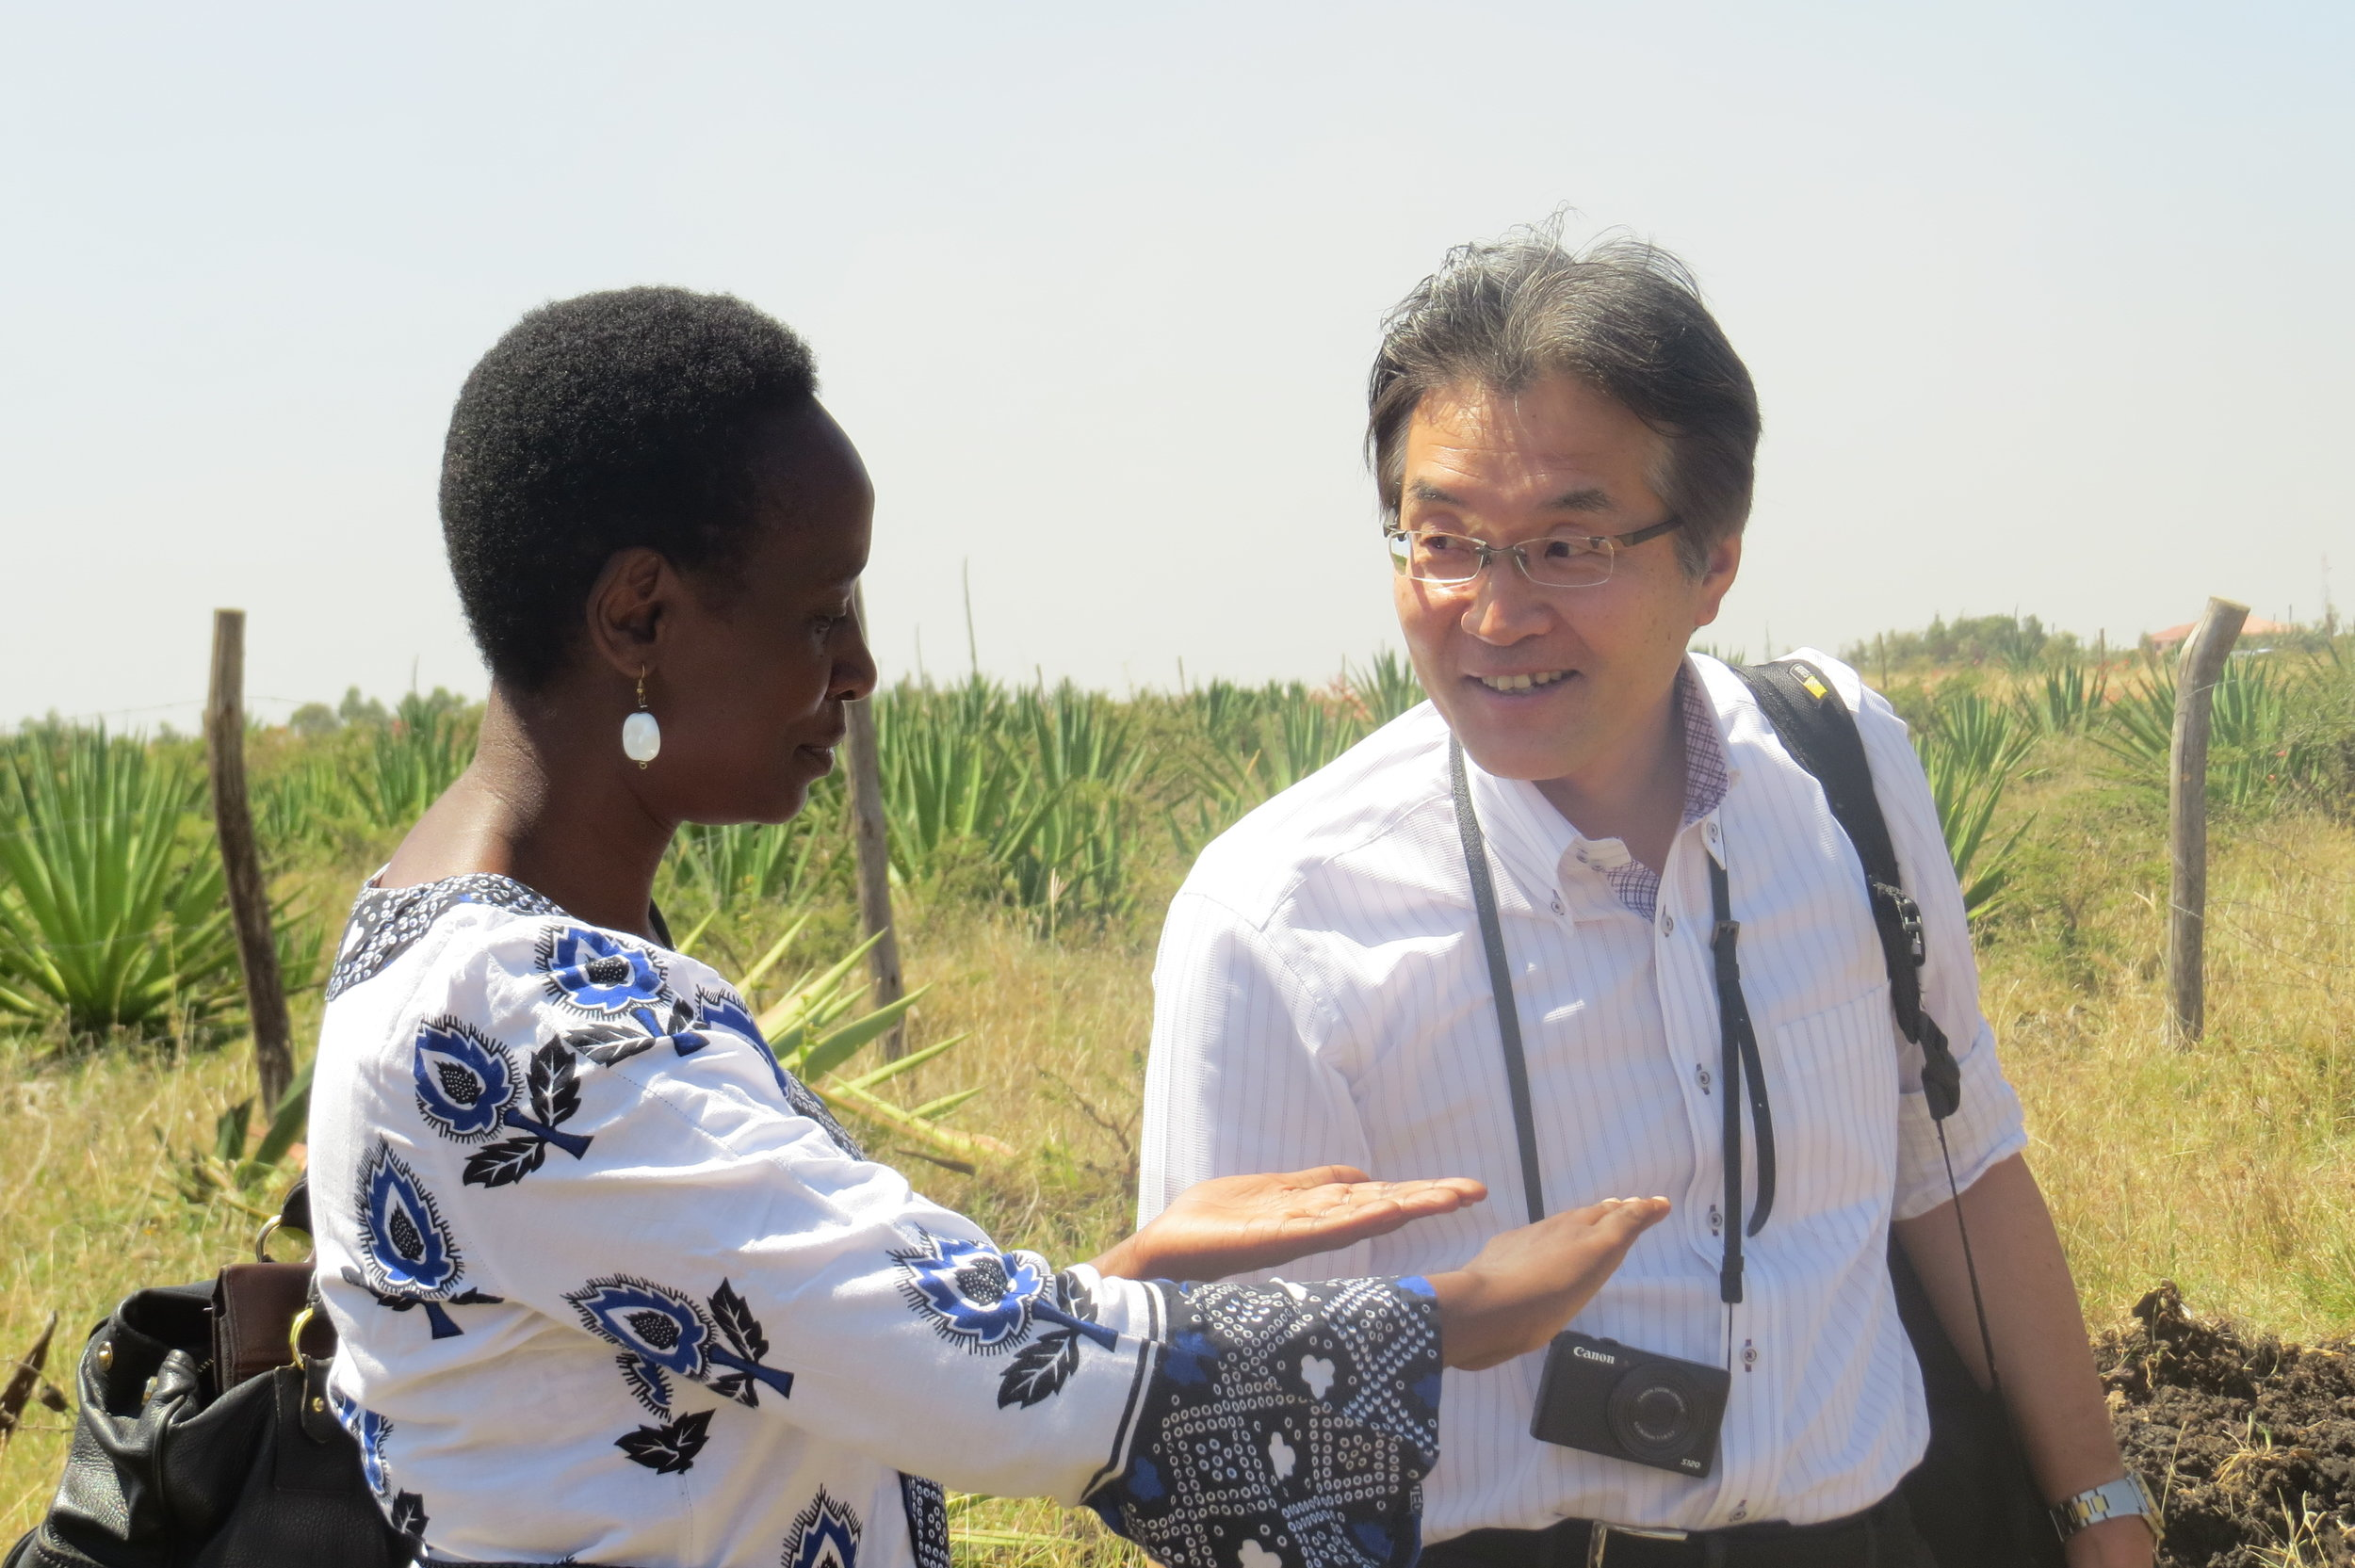 Jane Weru shares a light moment with one of the Lixil reprsentatives